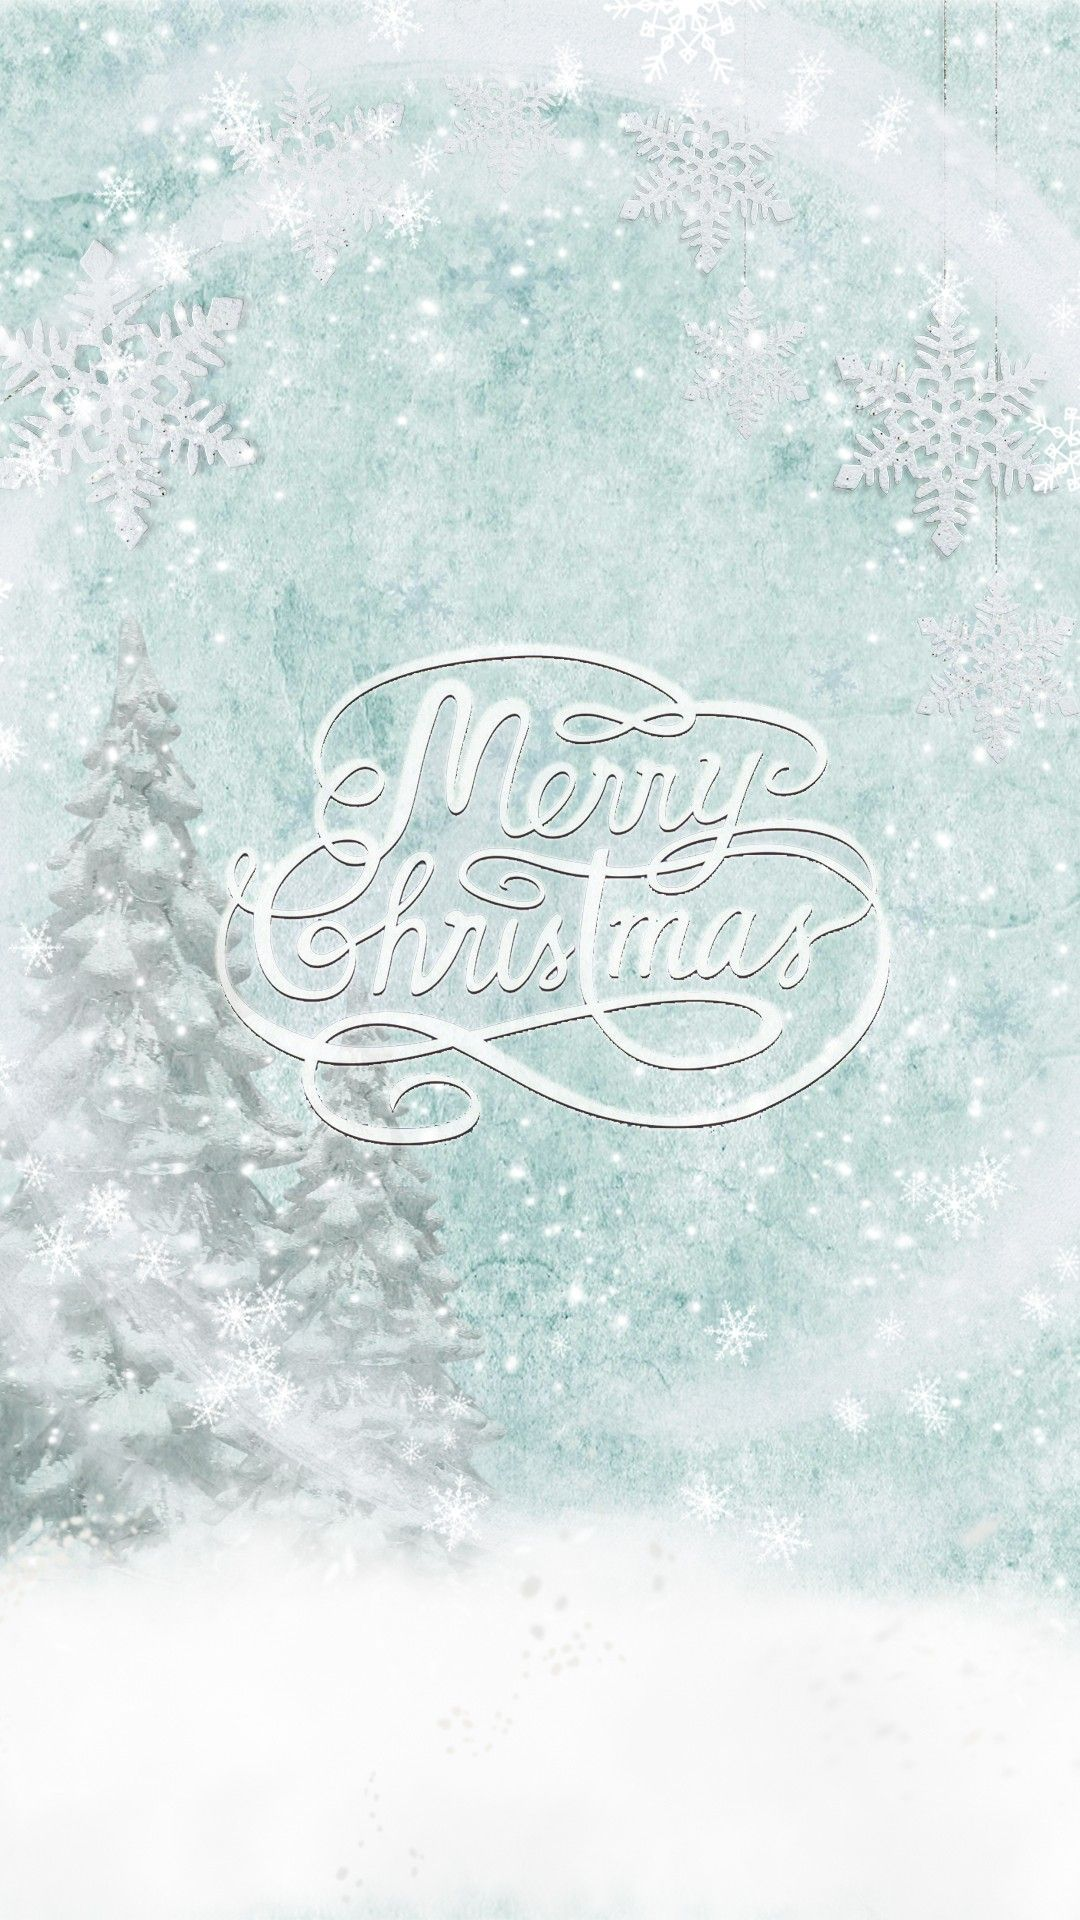 Iphone Christmas | IpPhone christmas by "|1080|1920|?|233e0de1dfffadad3962e99218db0b99|False|UNLIKELY|0.300354927778244